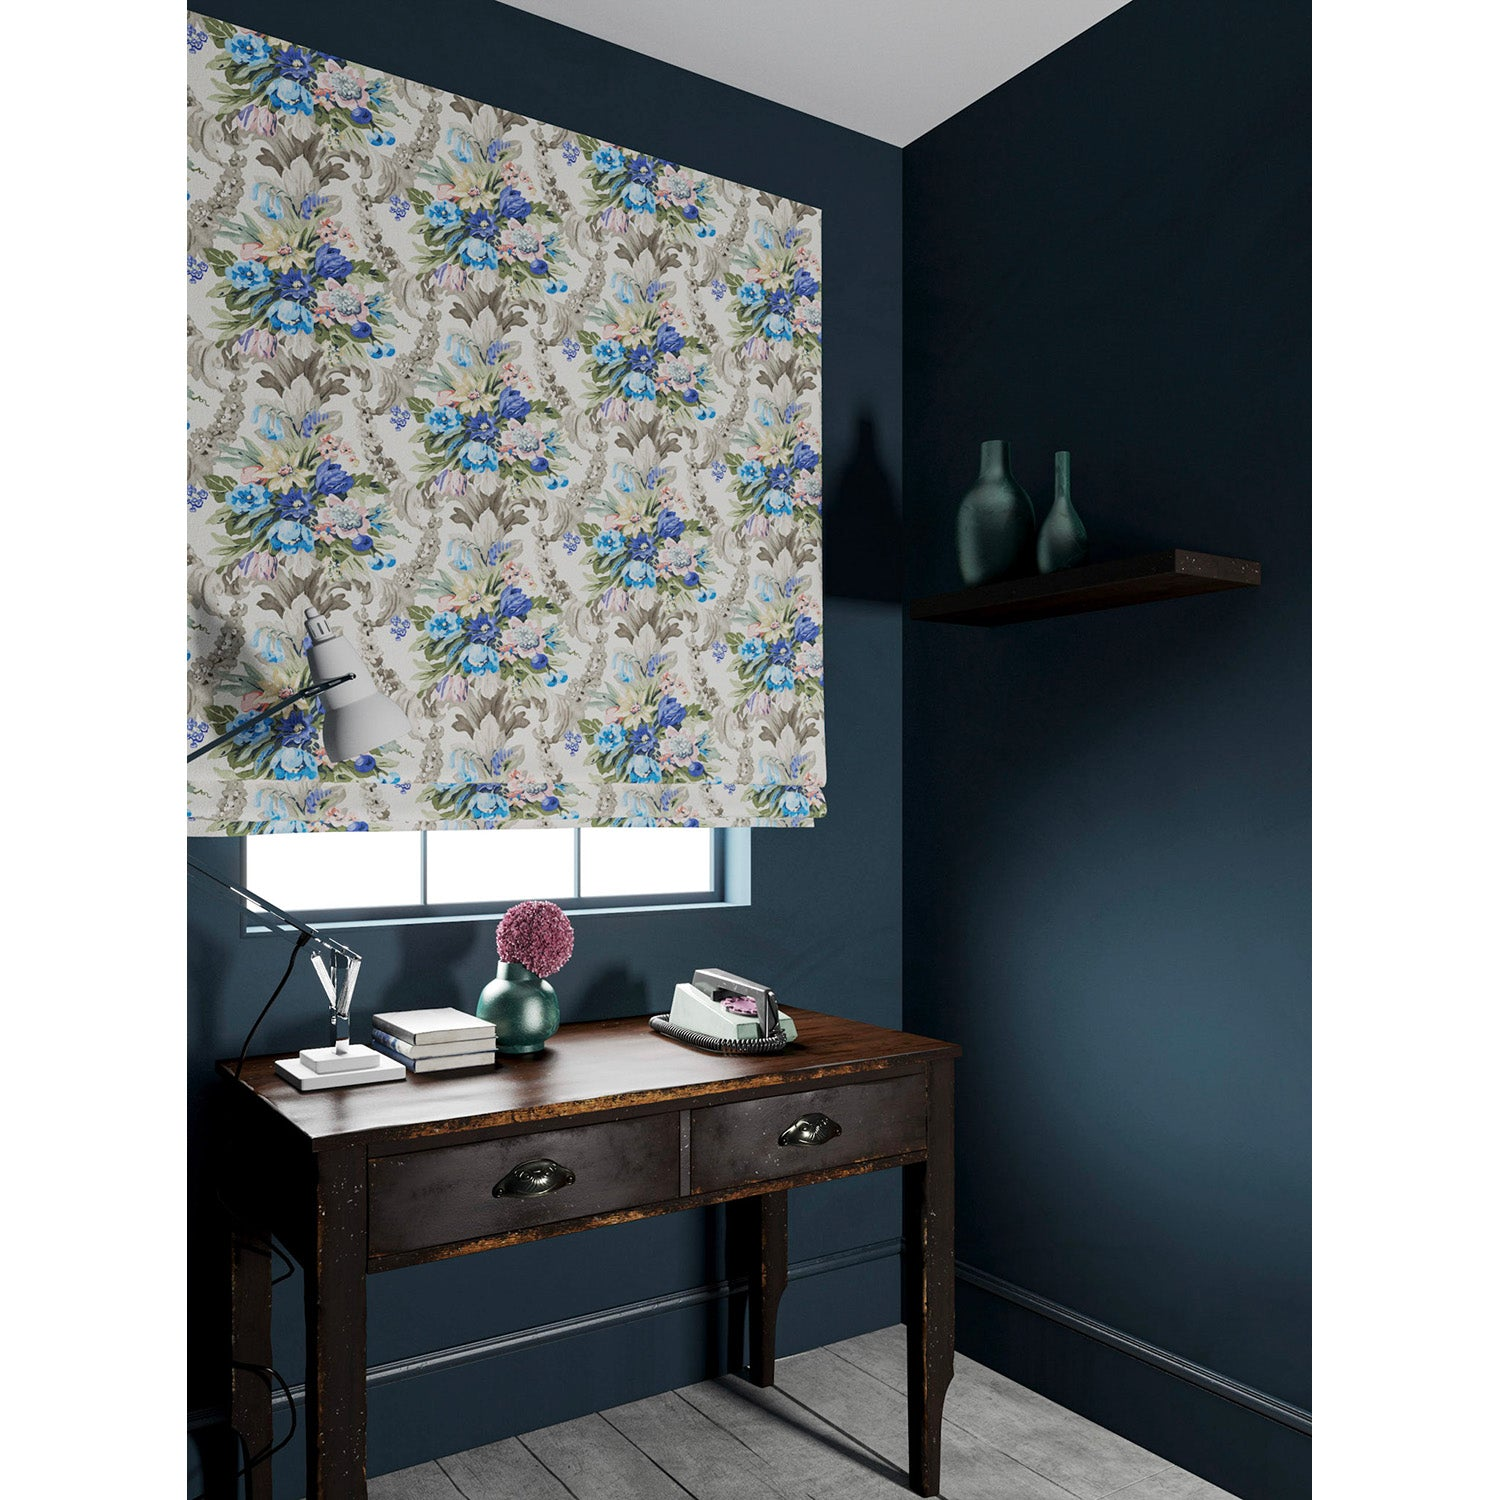 Blind in a velvet fabric with blue and peach floral bouquet and stain resistant finish